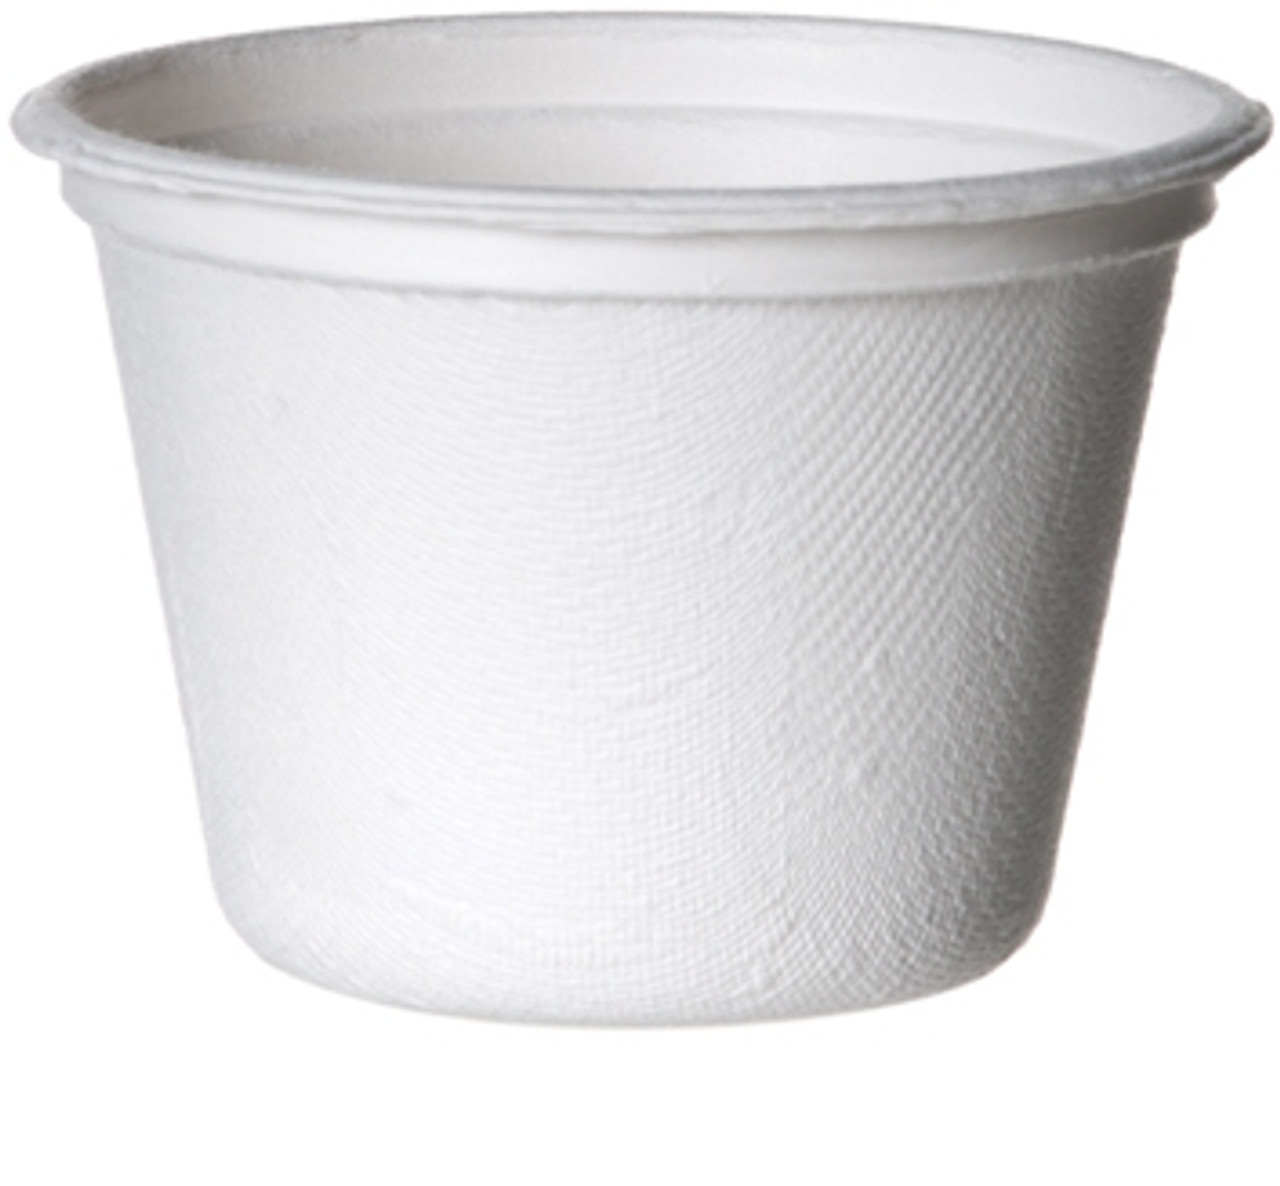 Sugarcane Portion Cup - 4oz